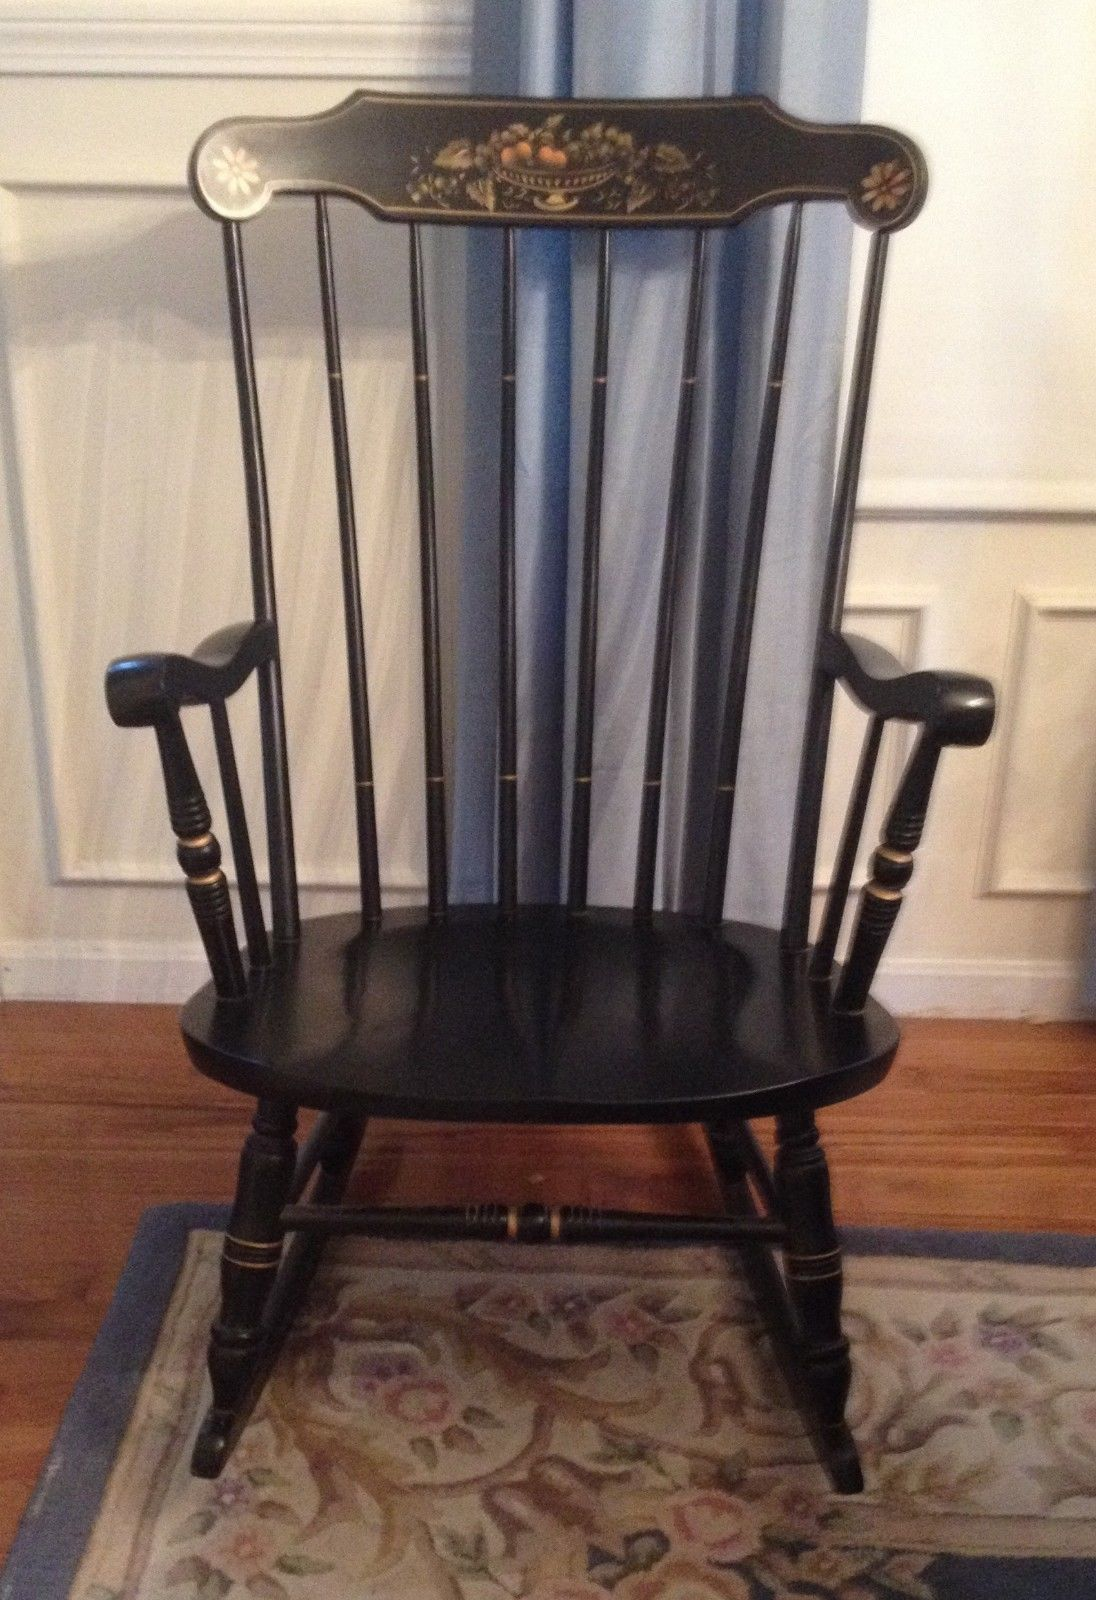 My Grandma Had One Just Like This Rocking Chair